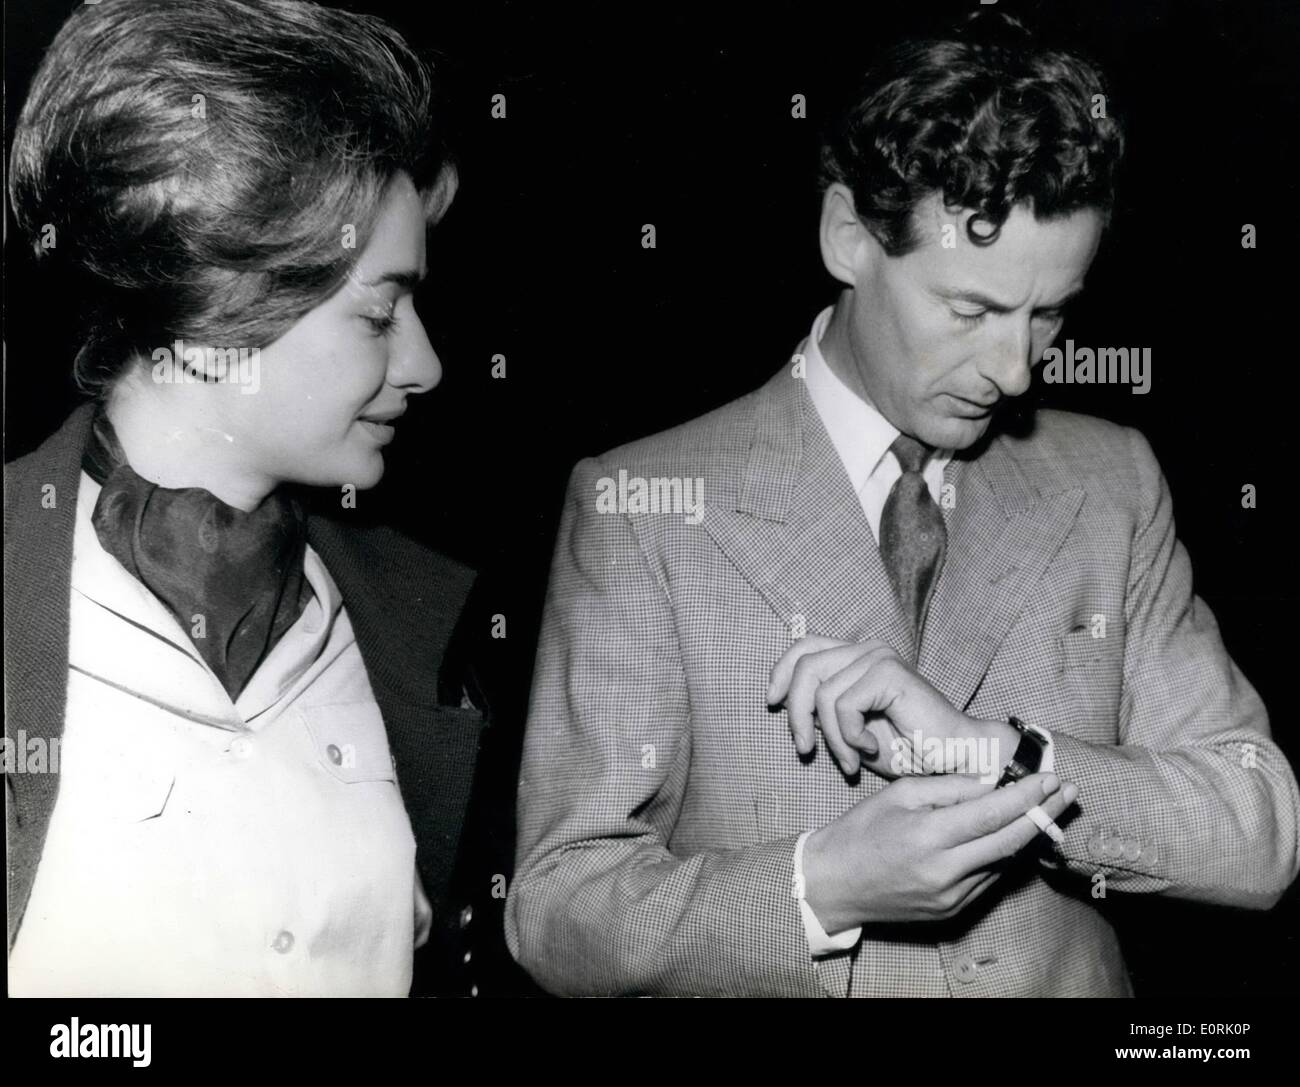 Peter Townsend And Margaret >> Oct. 10, 1959 - 12-10-59 Peter Townsend and his wife to be. Wristlet Stock Photo: 69361286 - Alamy